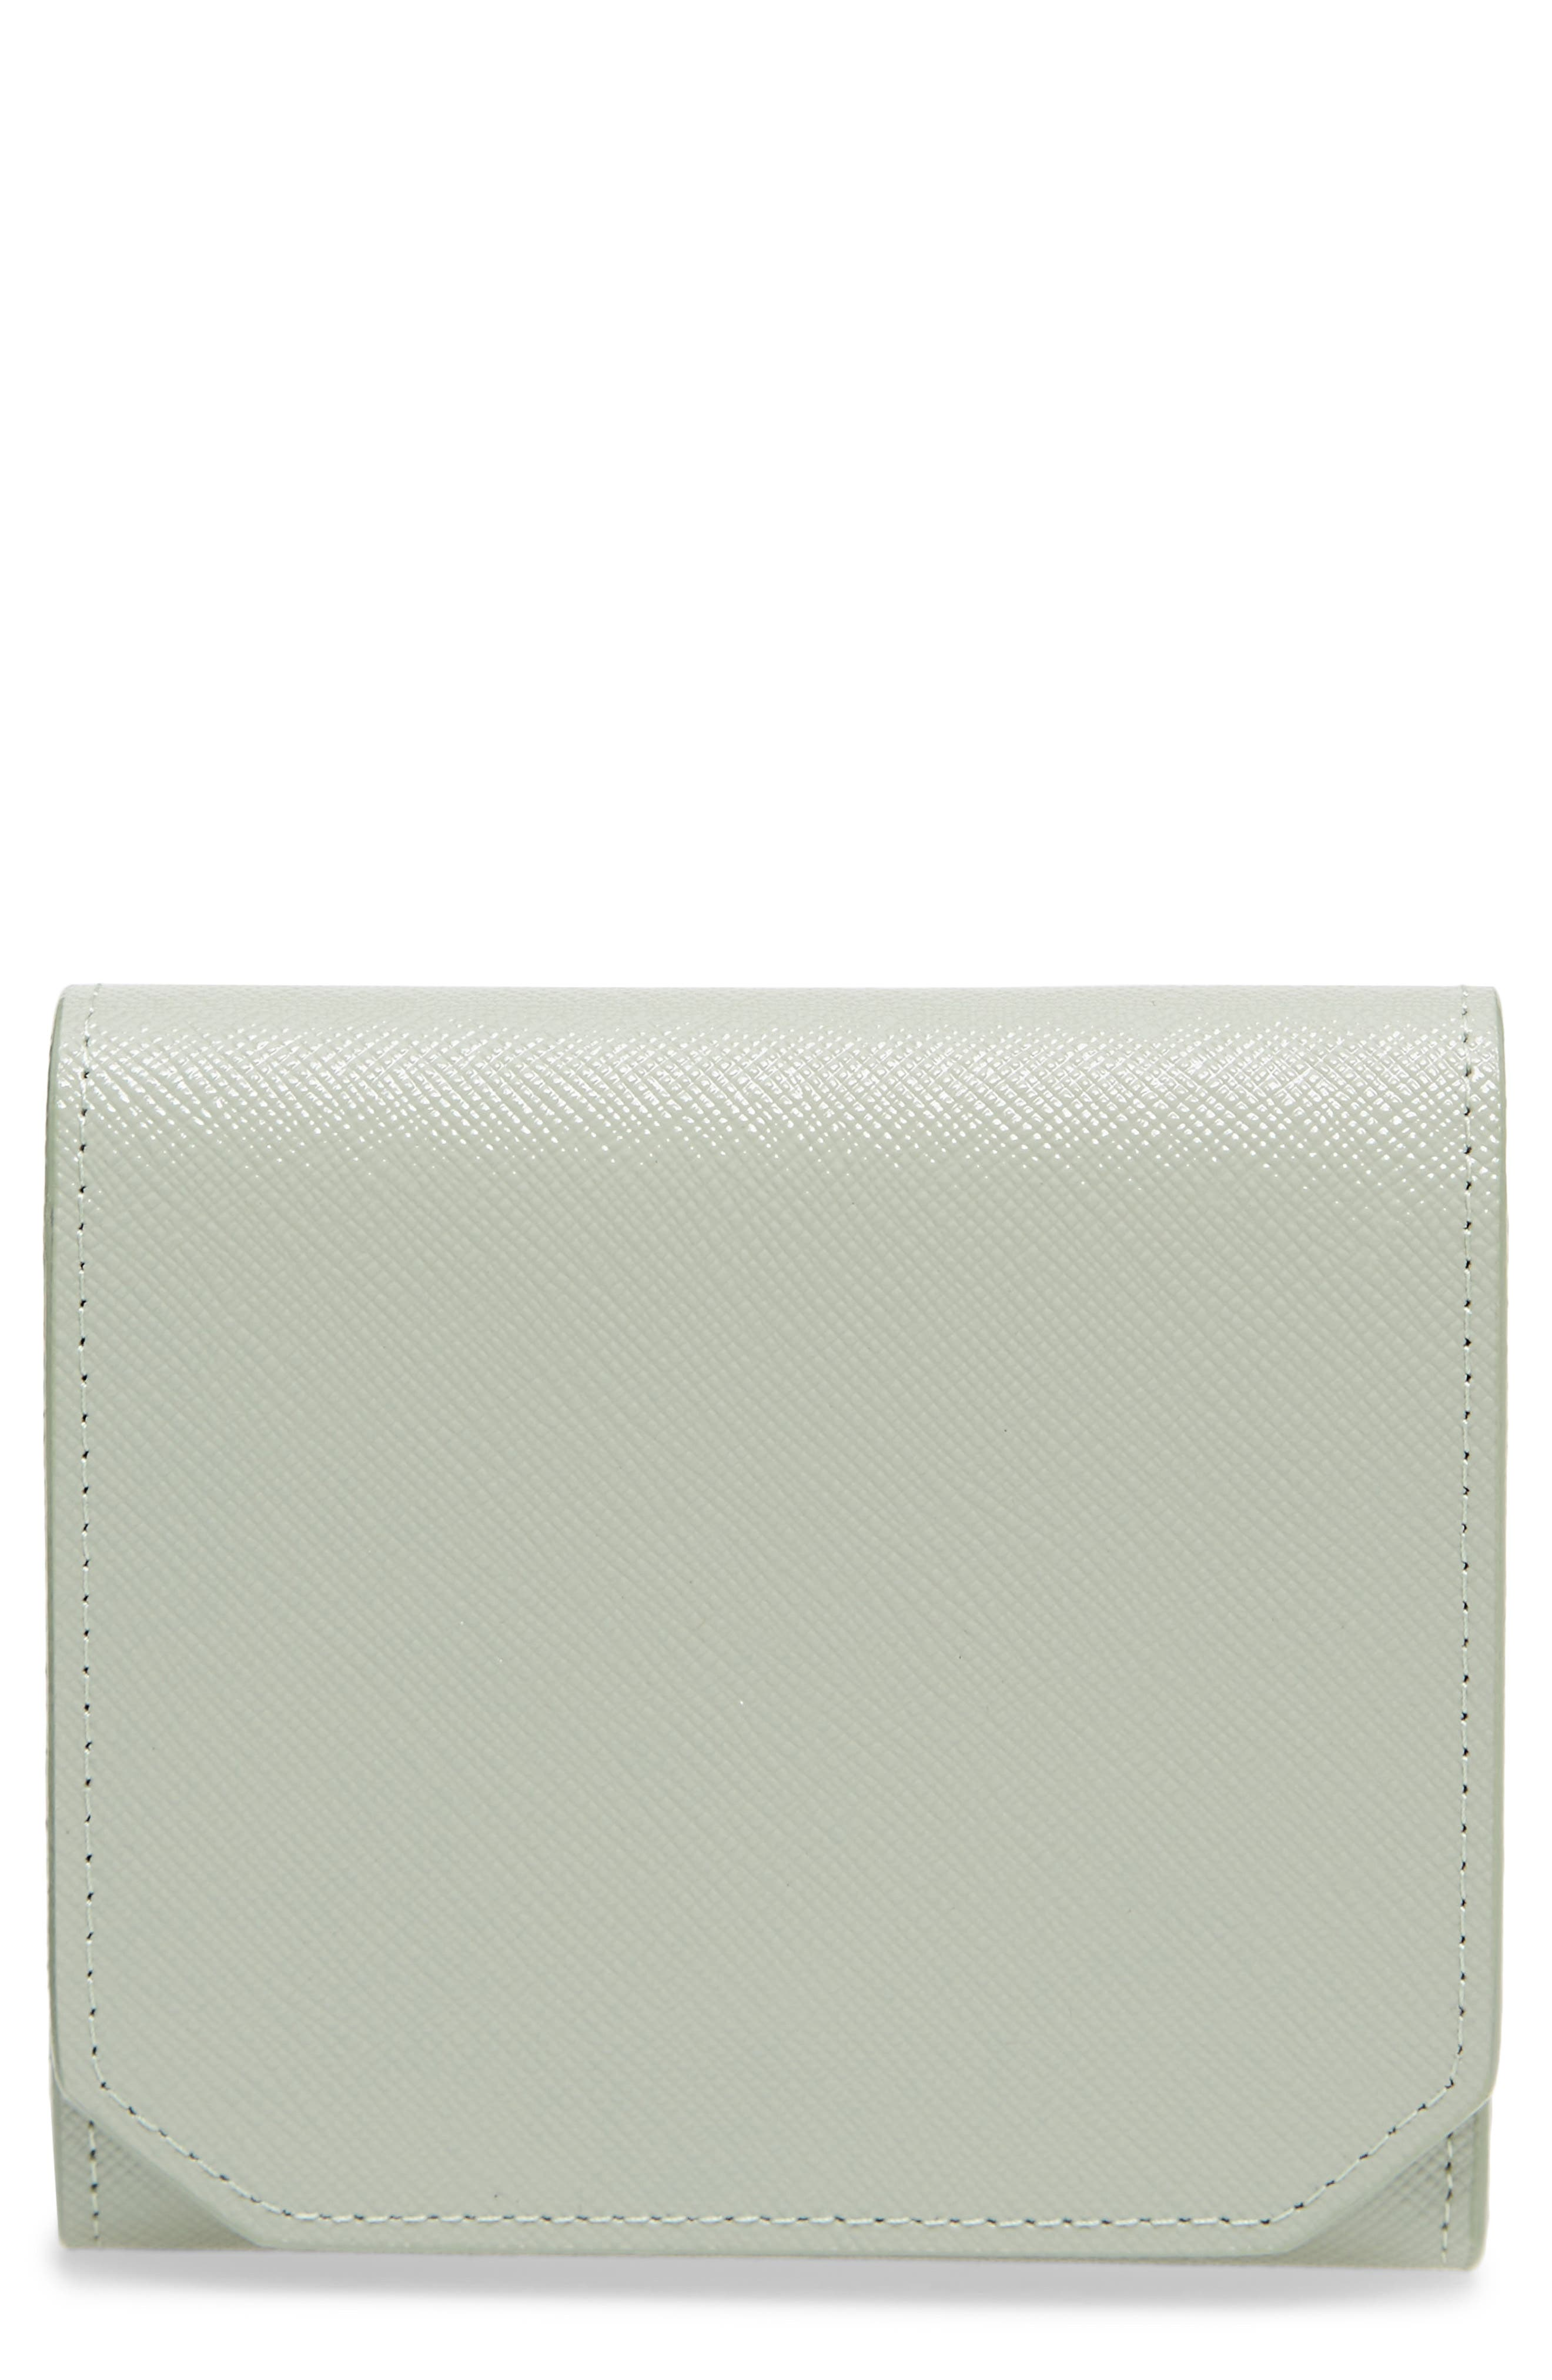 Nordstrom Trifold Leather Envelope Wallet